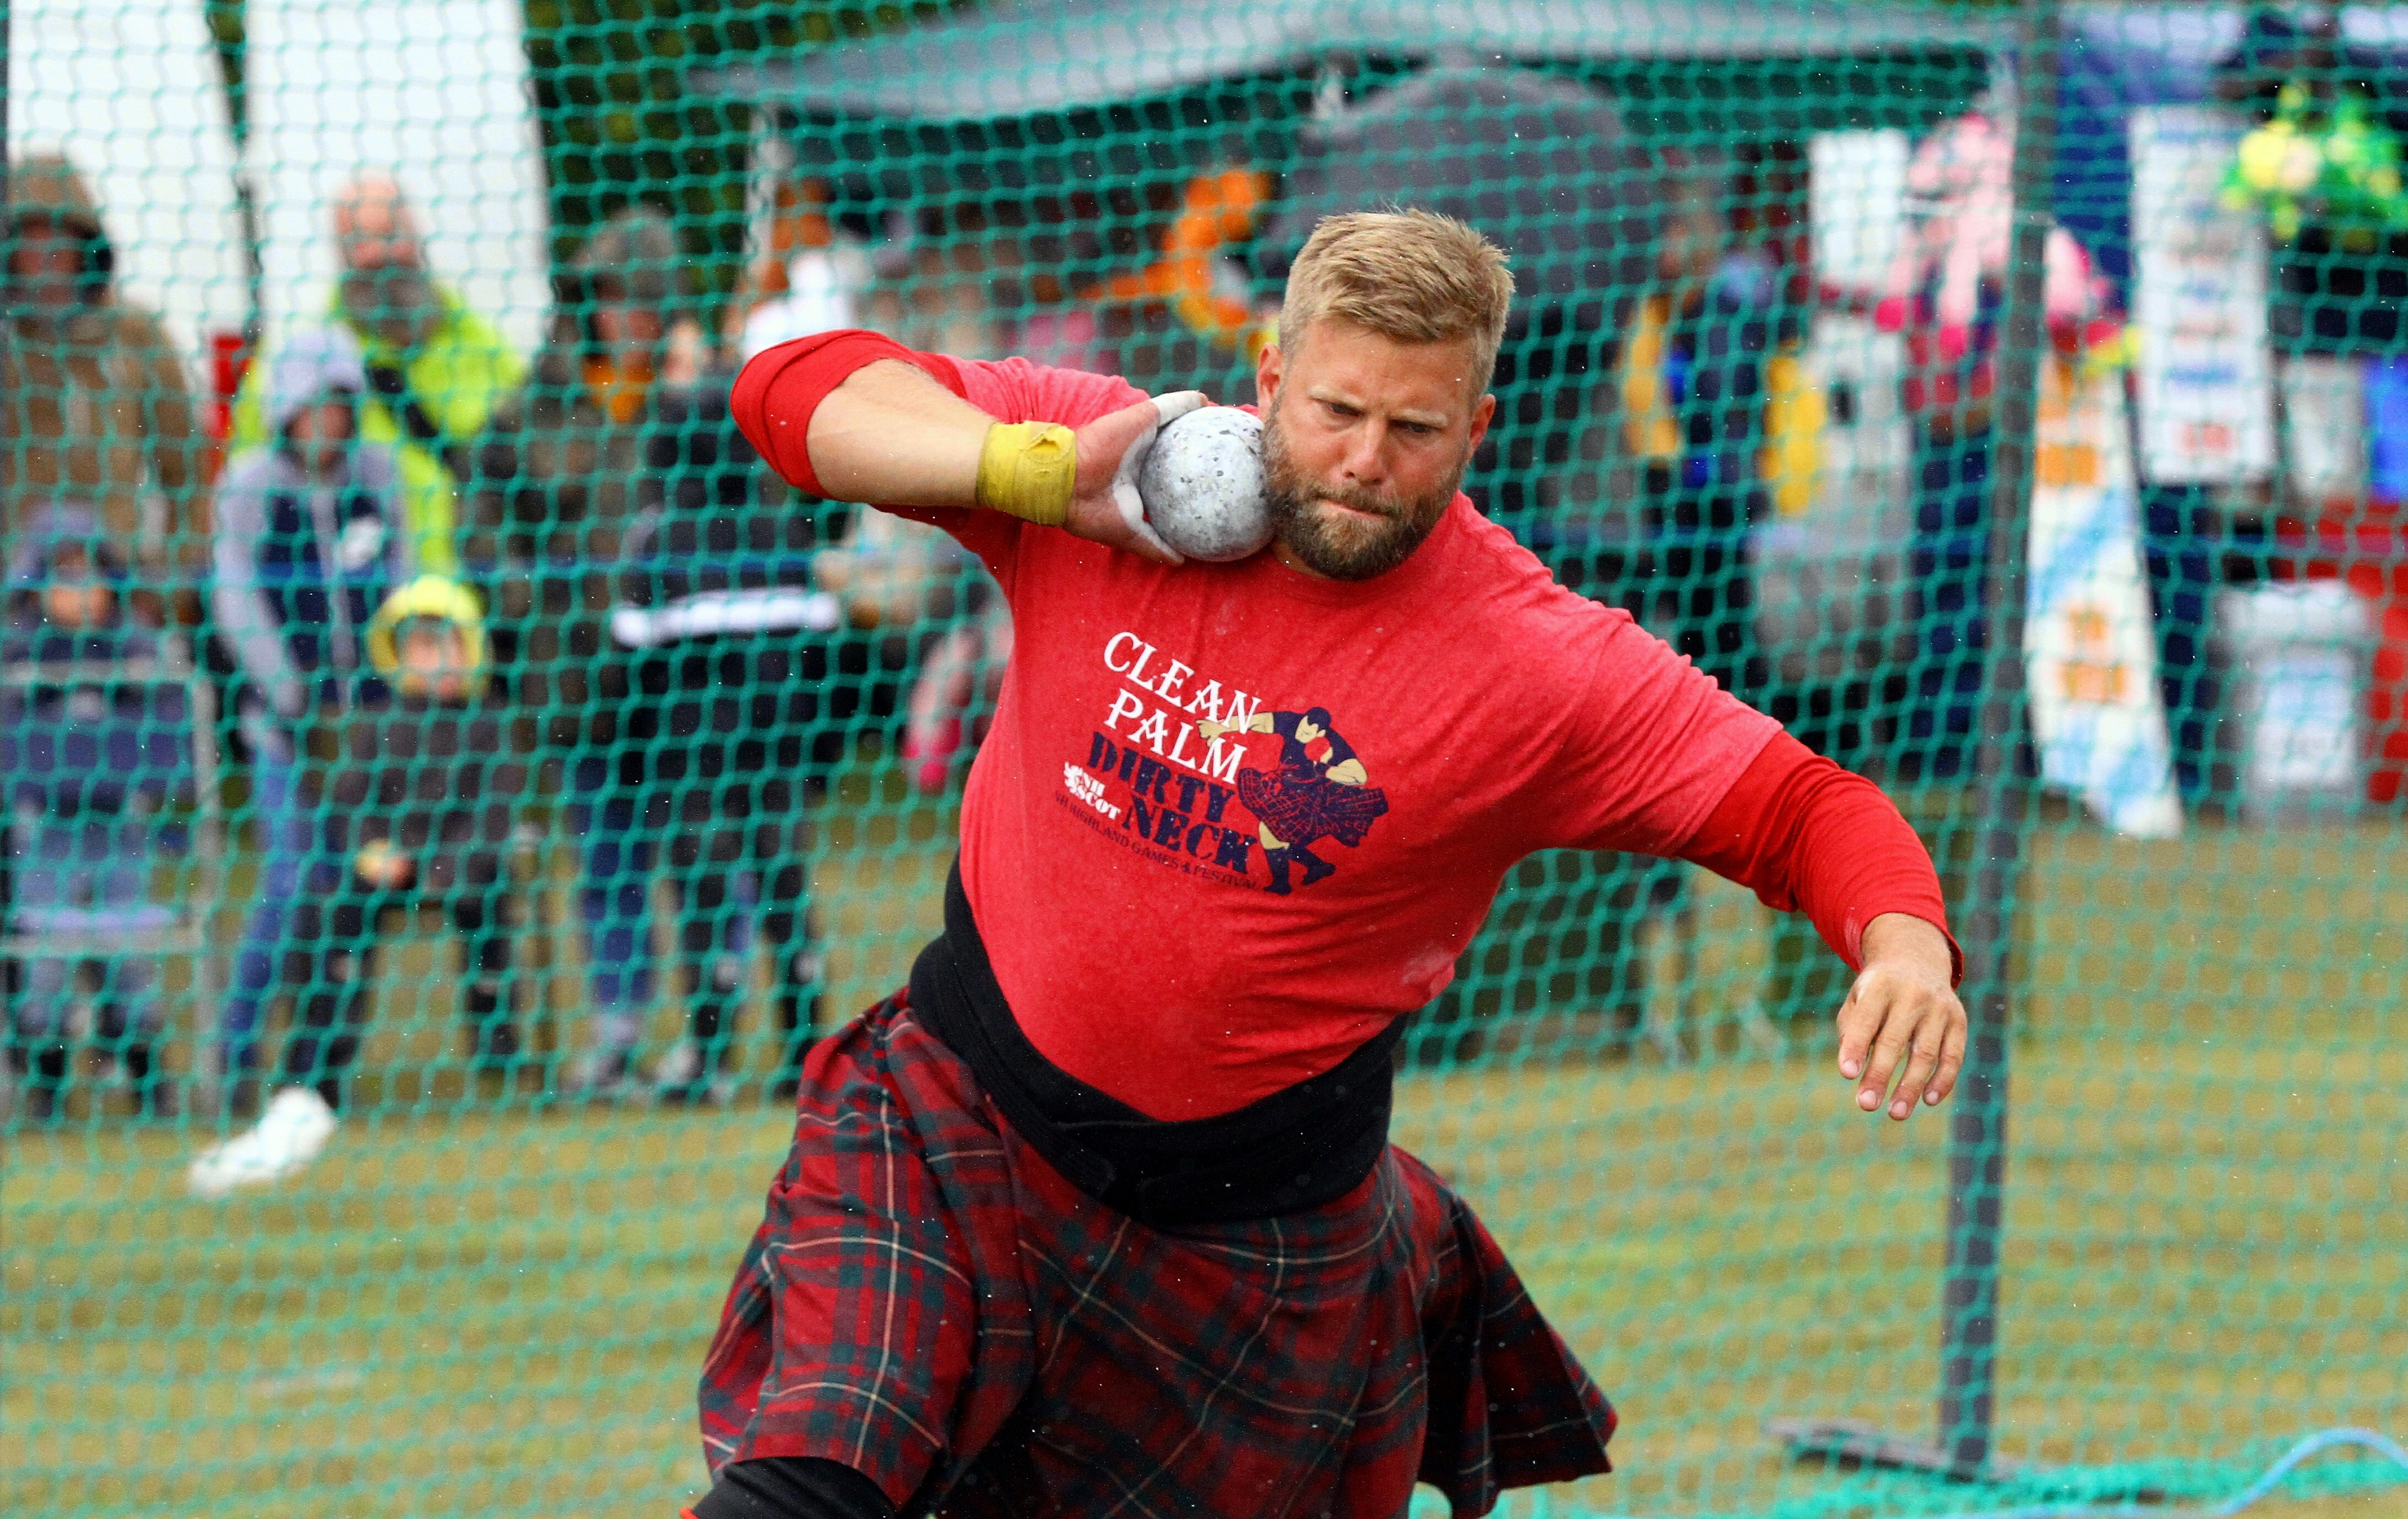 A competitor during at a previous St Andrews Highland Games.